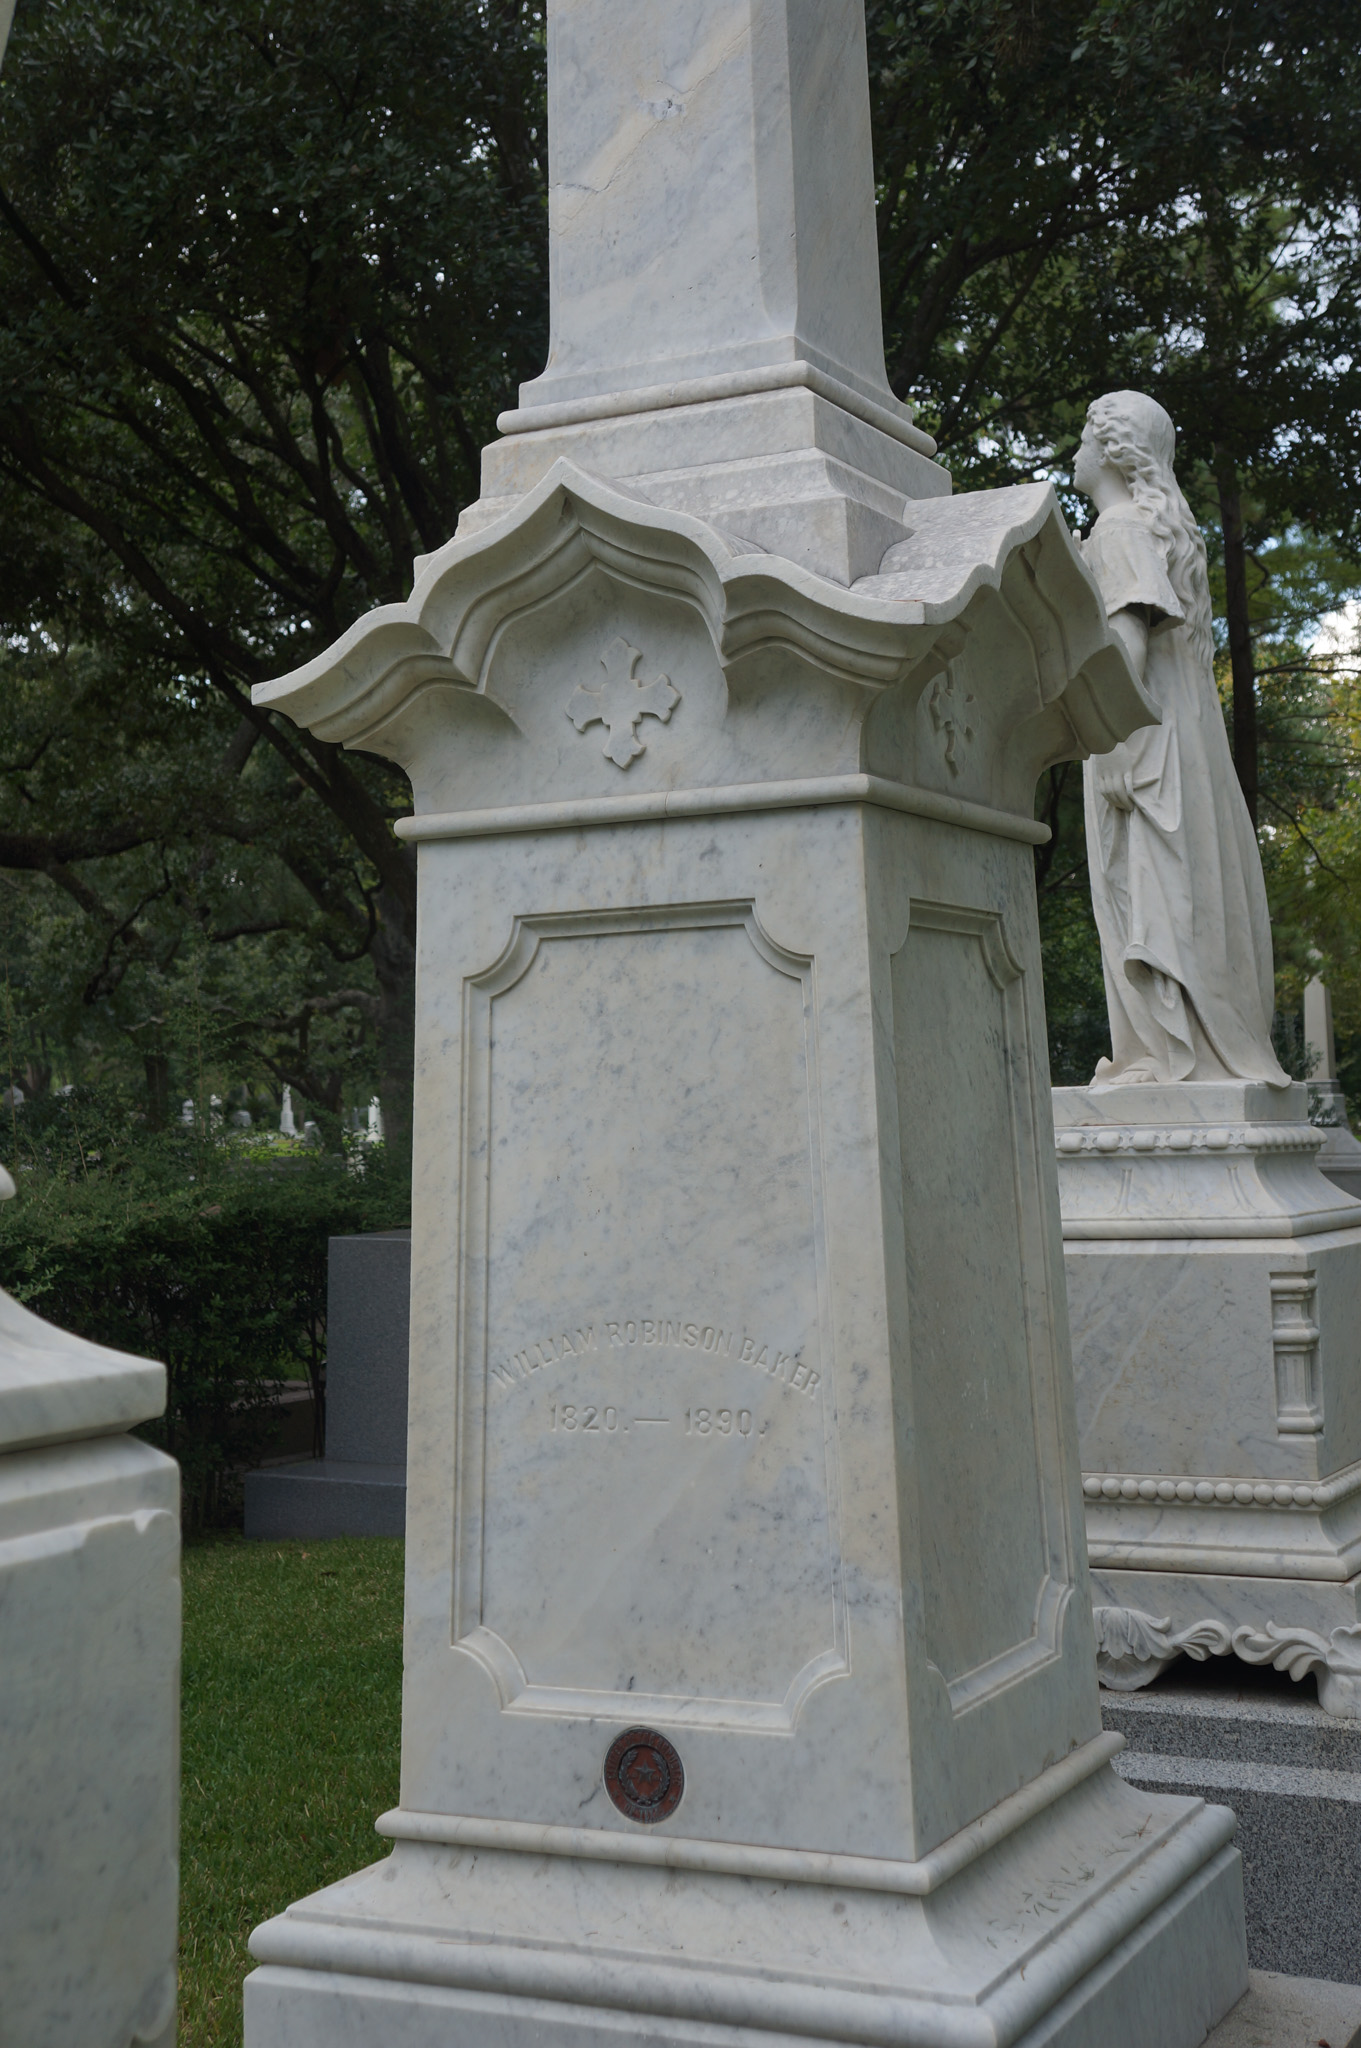 Inscription for William R Baker on Family monument